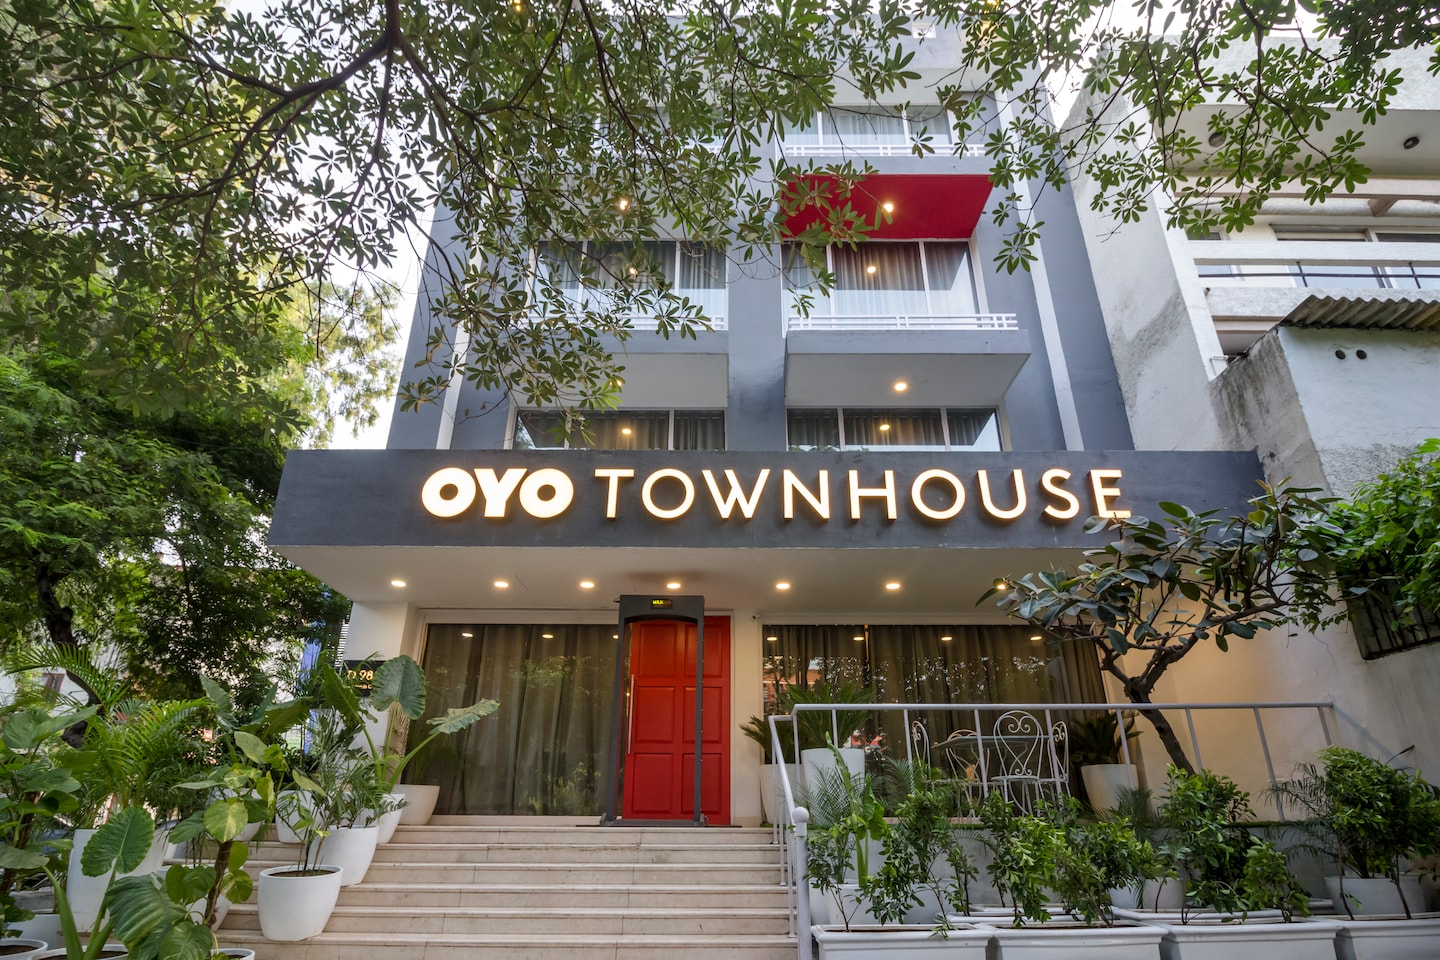 OYO Townhouse 013 New Friends Colony Delhi  Delhi Hotel